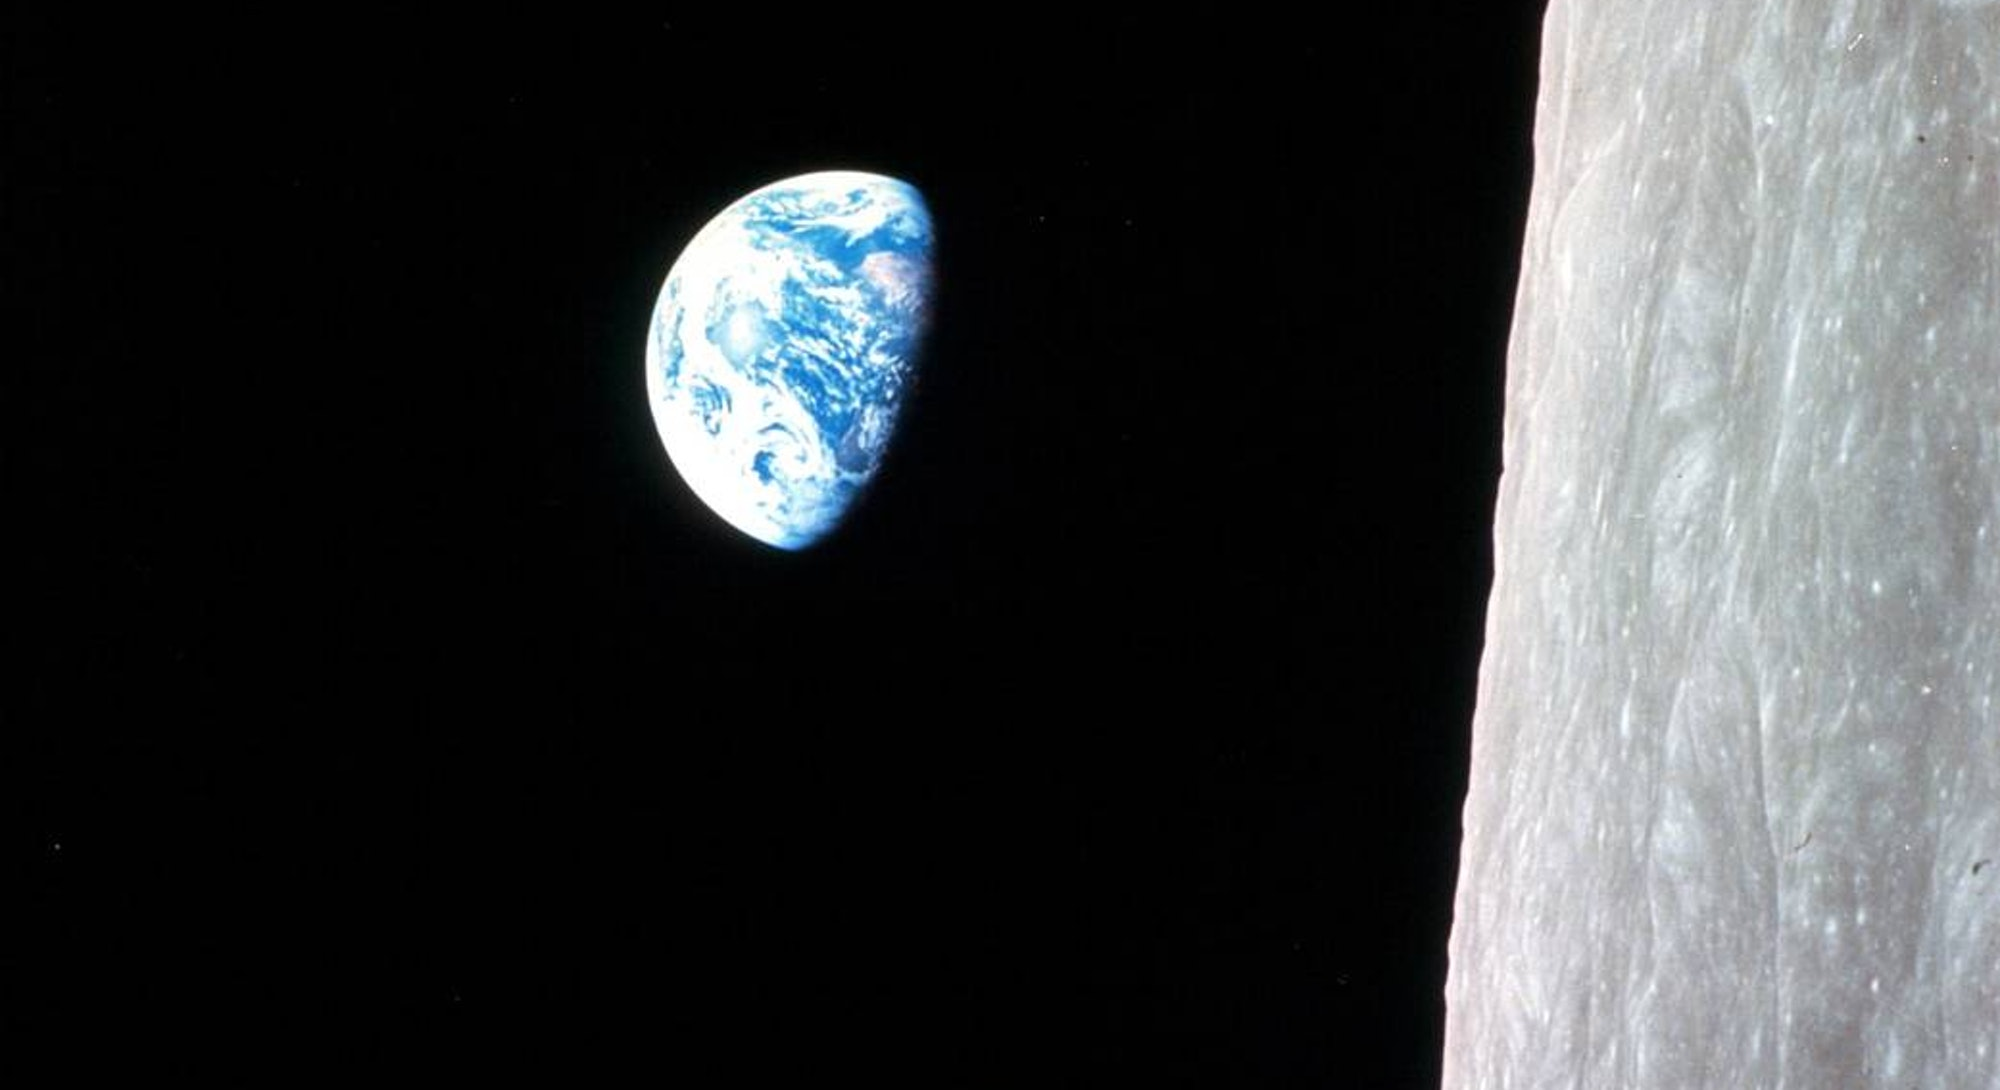 A view of Earth as seen from the far side of the Moon.